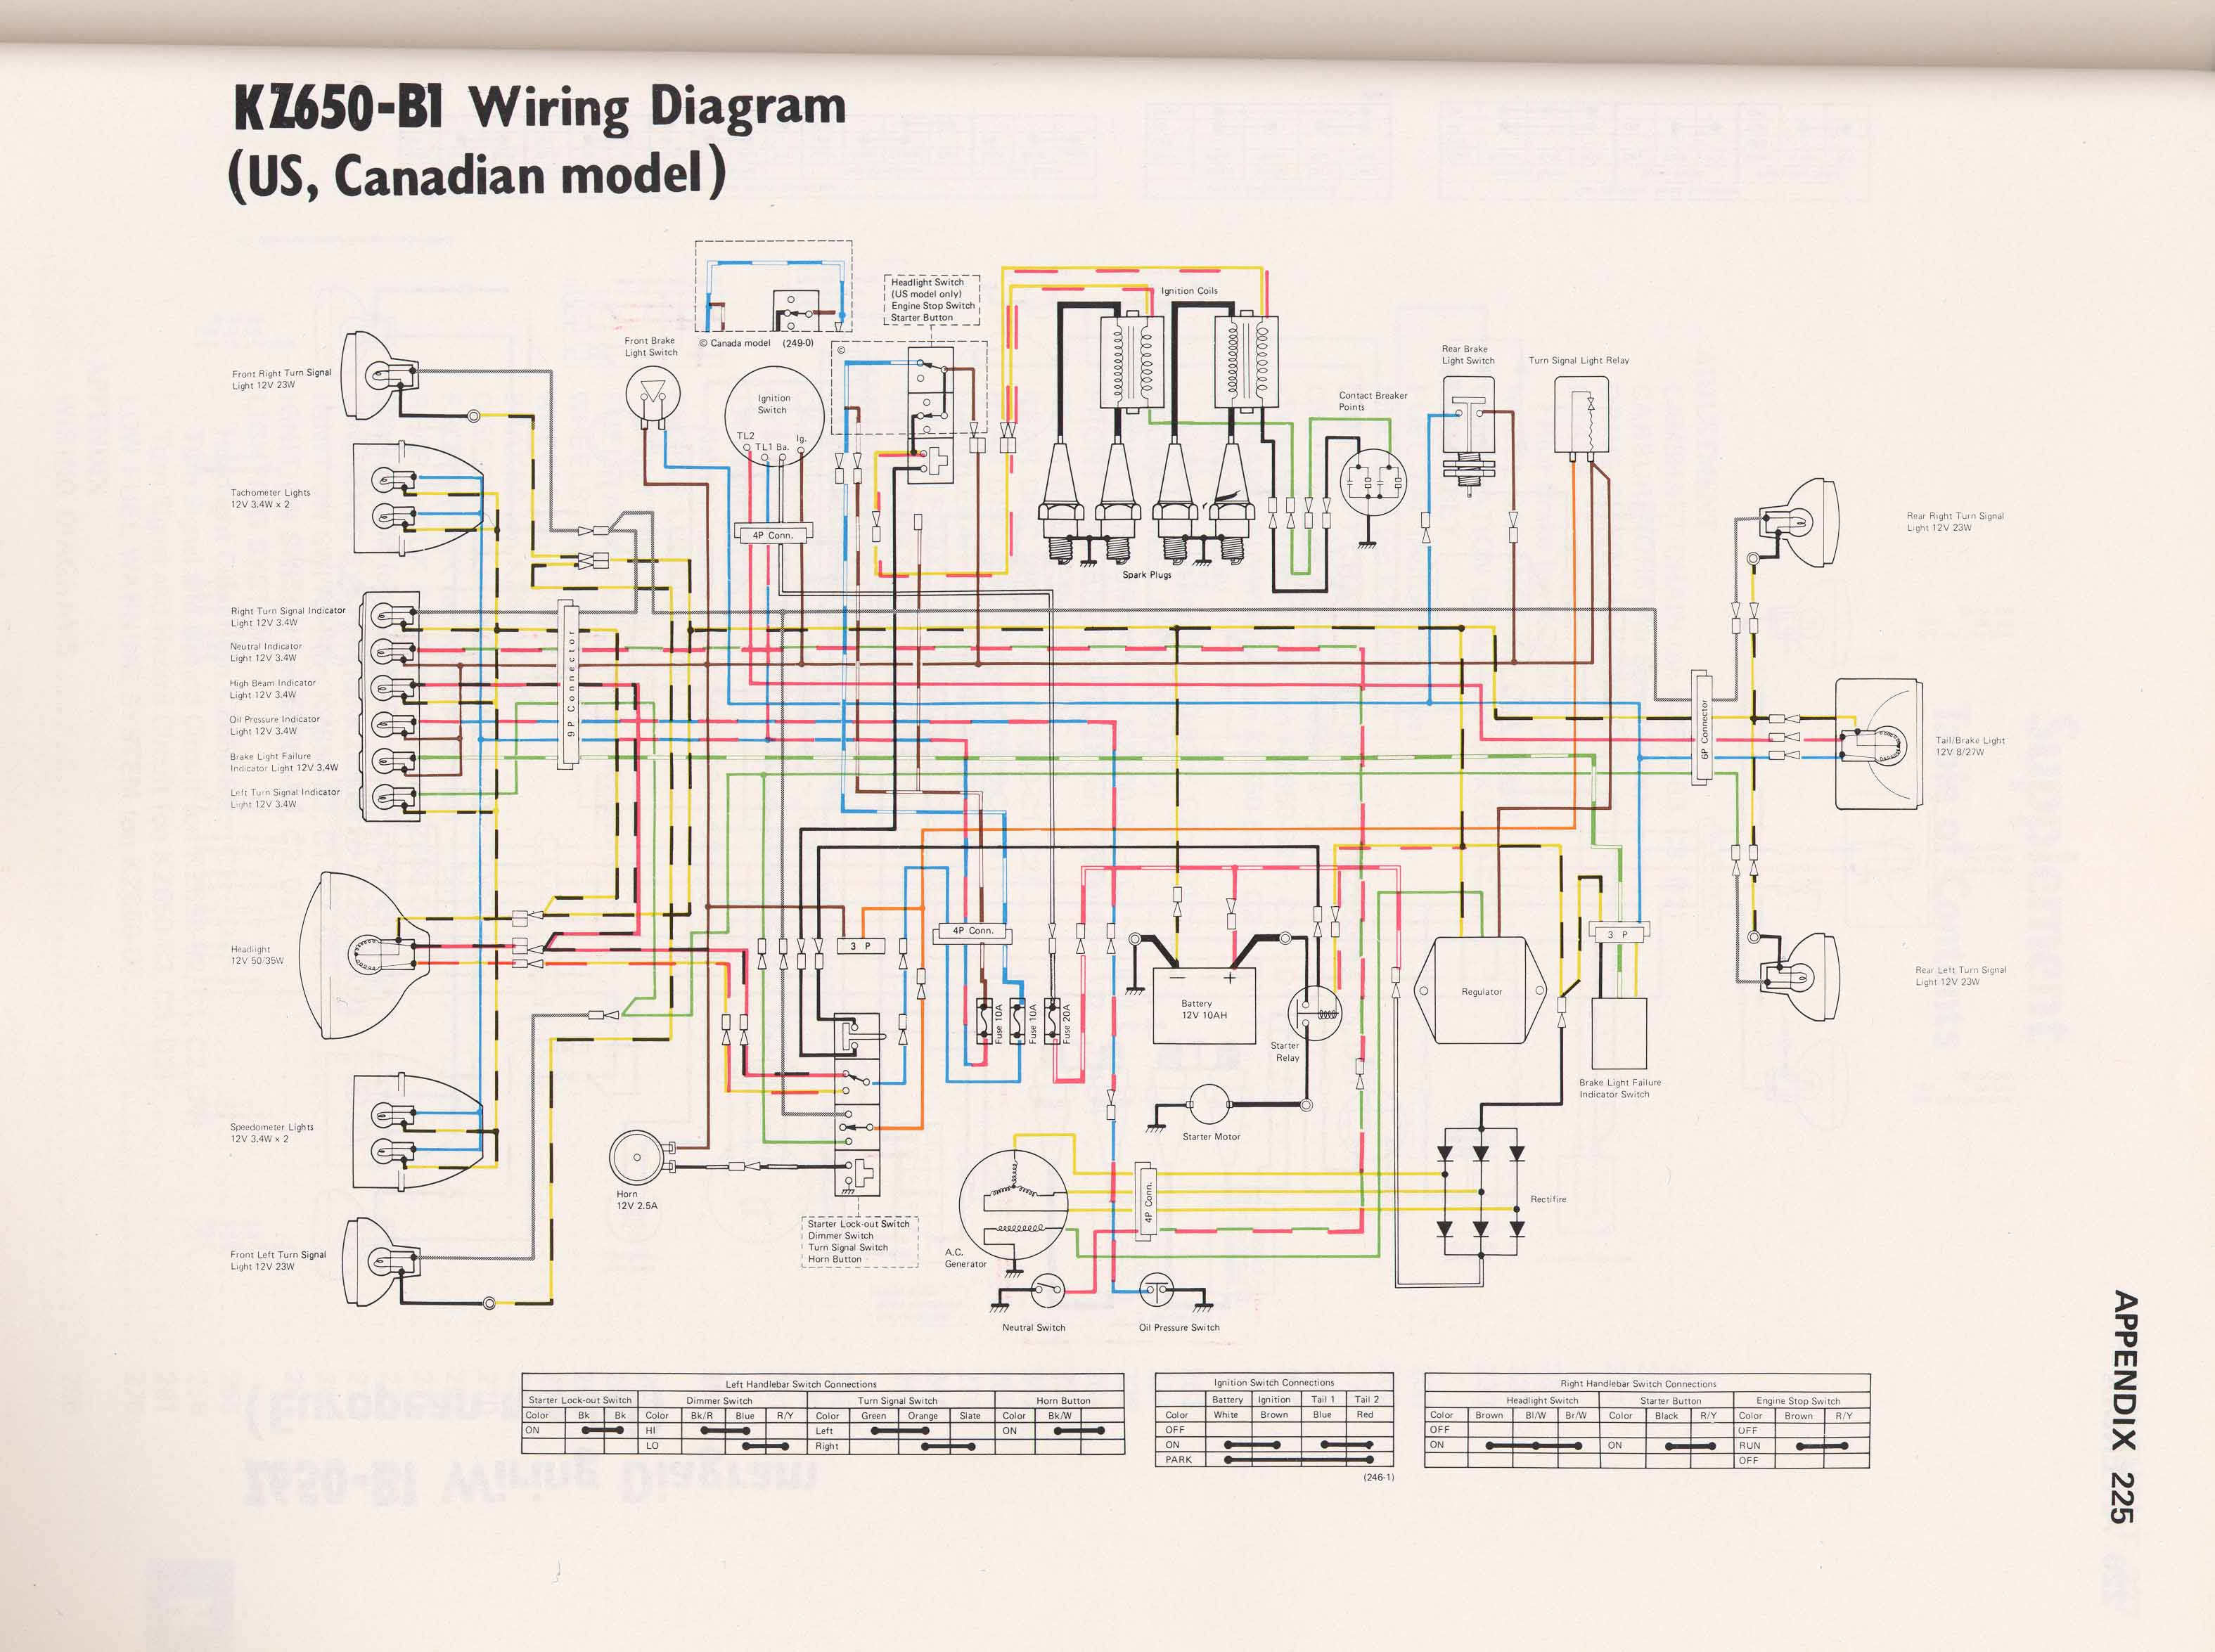 Kawasaki Wiring Diagrams Everything About Diagram Vulcan 1600 Classic Images Gallery